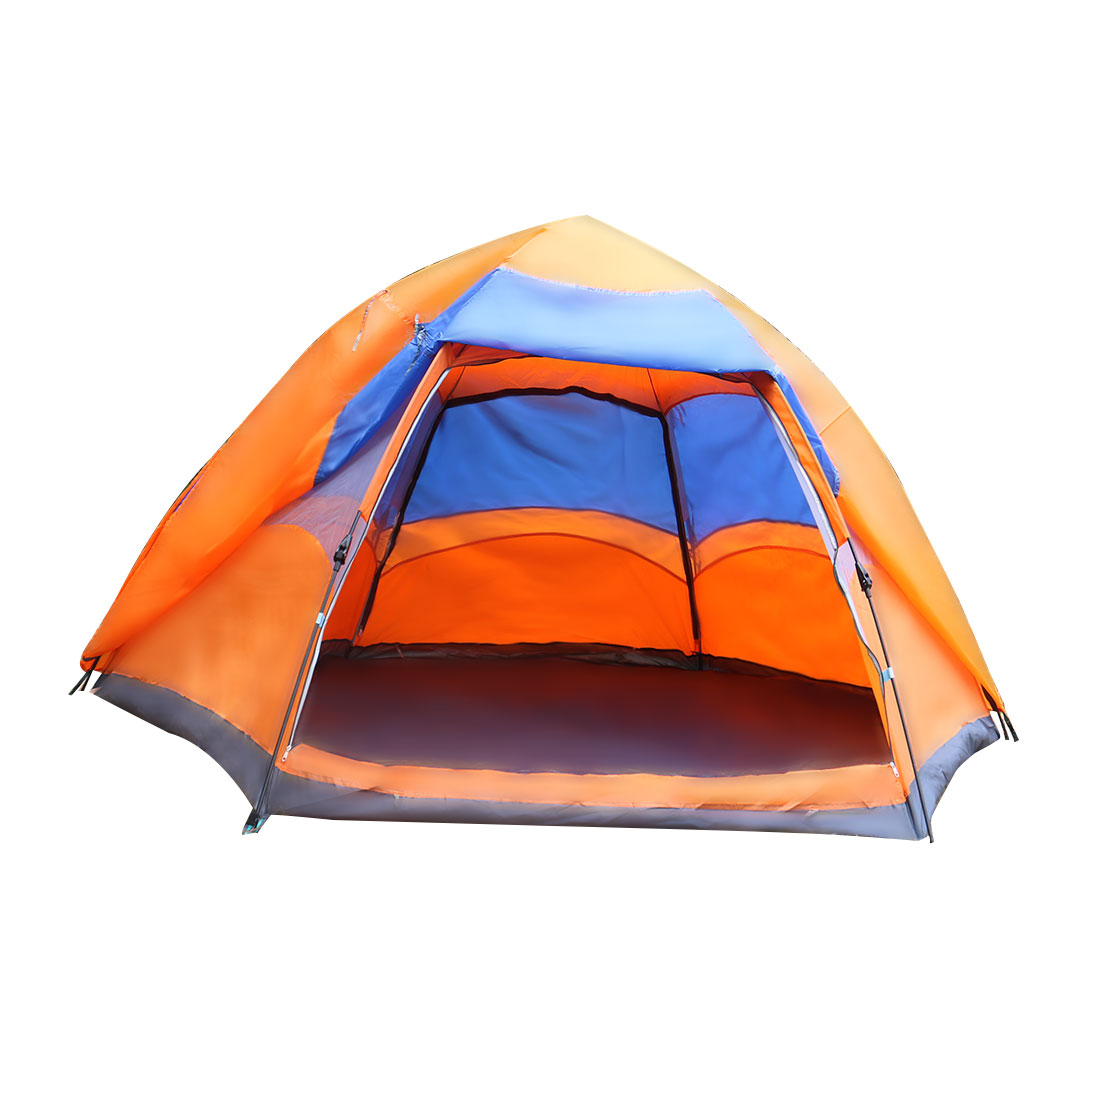 Outdoor Double Layer Sun Shelter Water Resistant Camping Tent 6-9 Person Orange